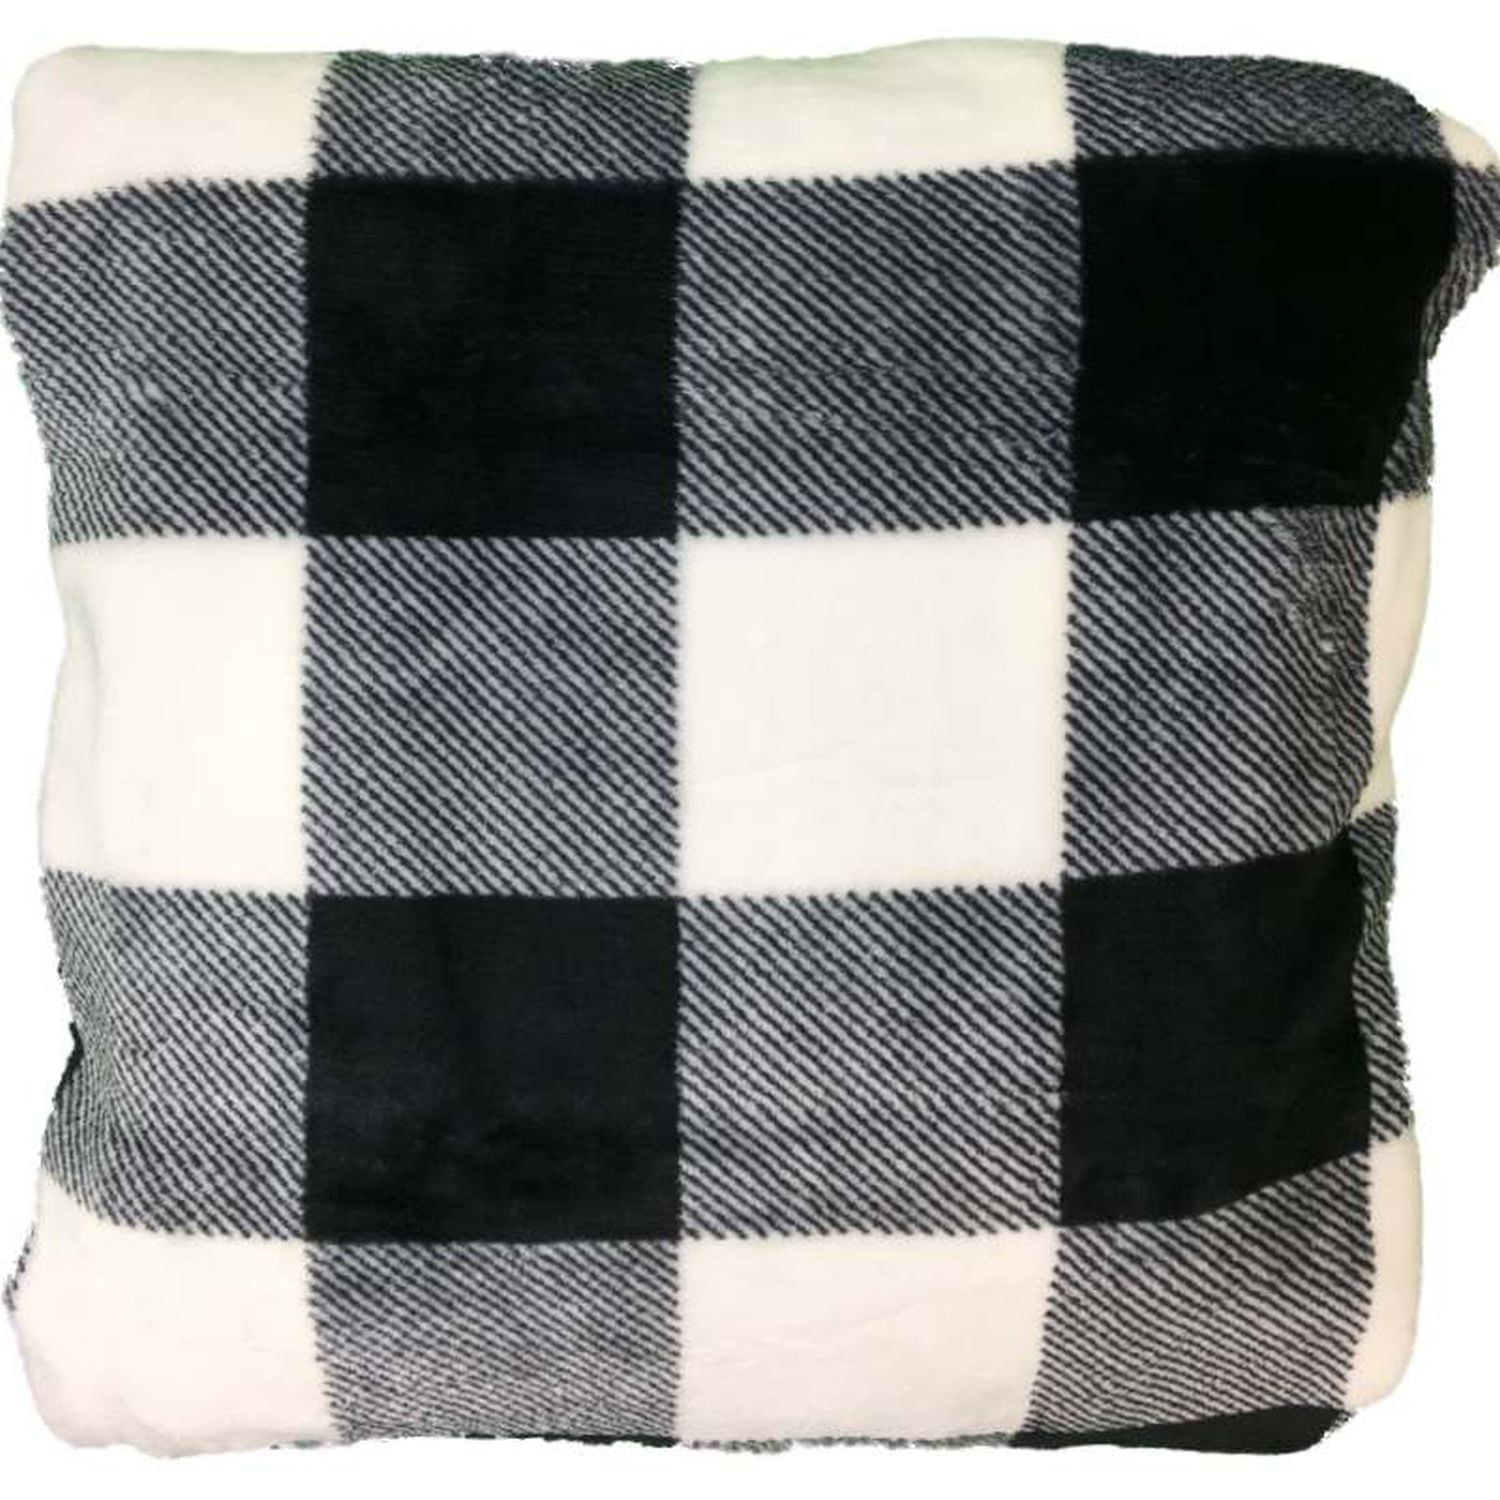 The Big One Oversized Plush Throw Blanket Black & White Buffalo